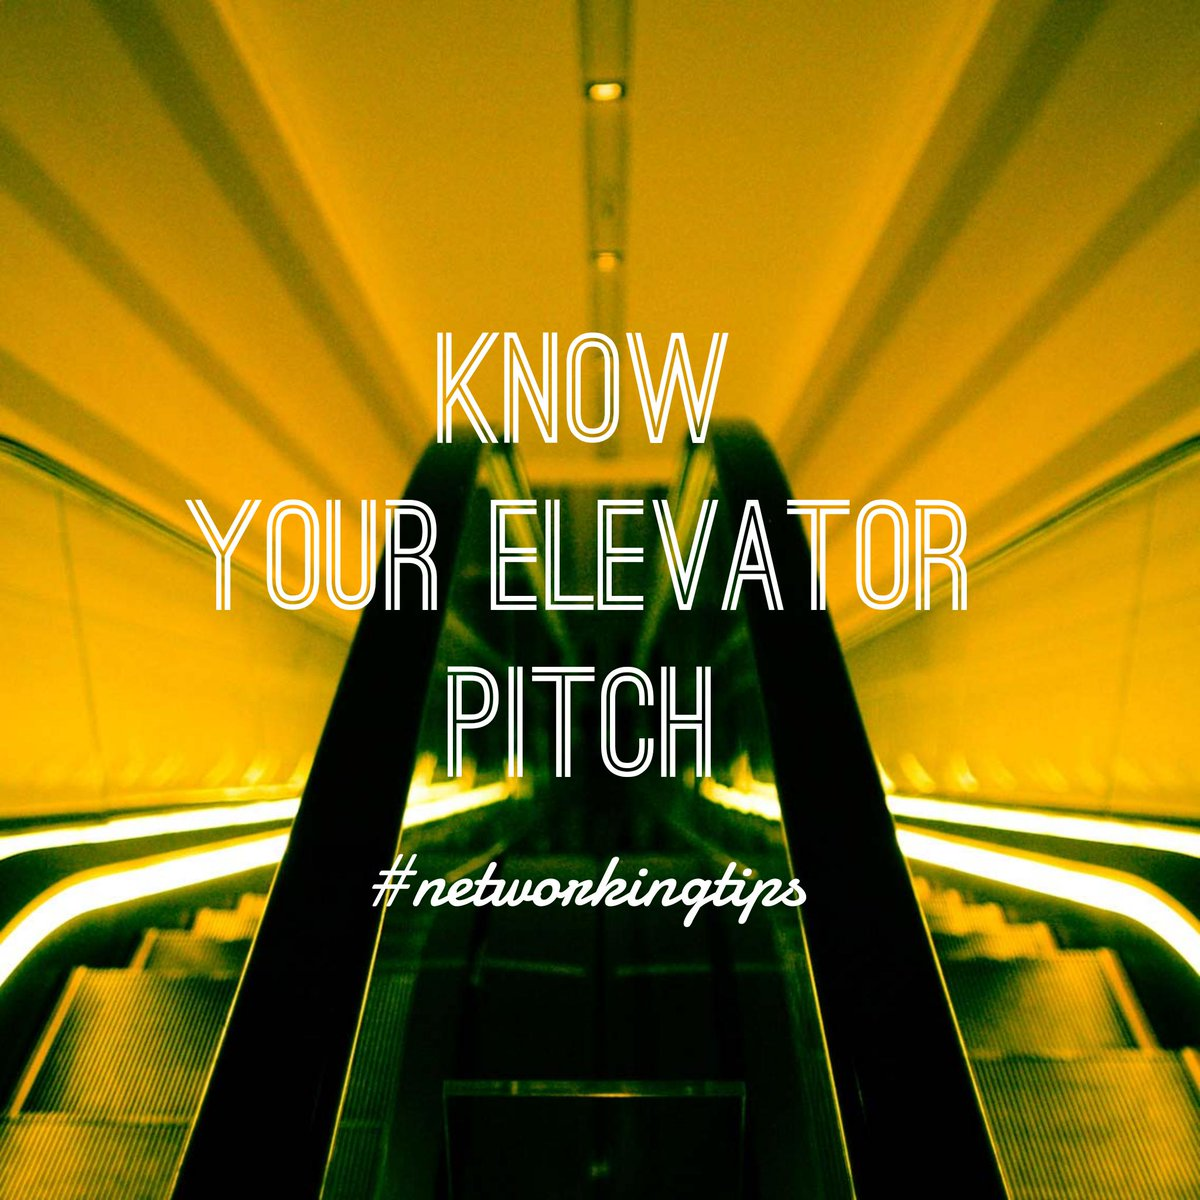 Thursday's #networkingtips #toptips get your elevator pitch right, did you know at @AthenaNetwork we offer training for #networkingskills?  #writingskills #businessgrowth #businessdevelopment #businessnetworking https://t.co/G9a1RWtLSQ